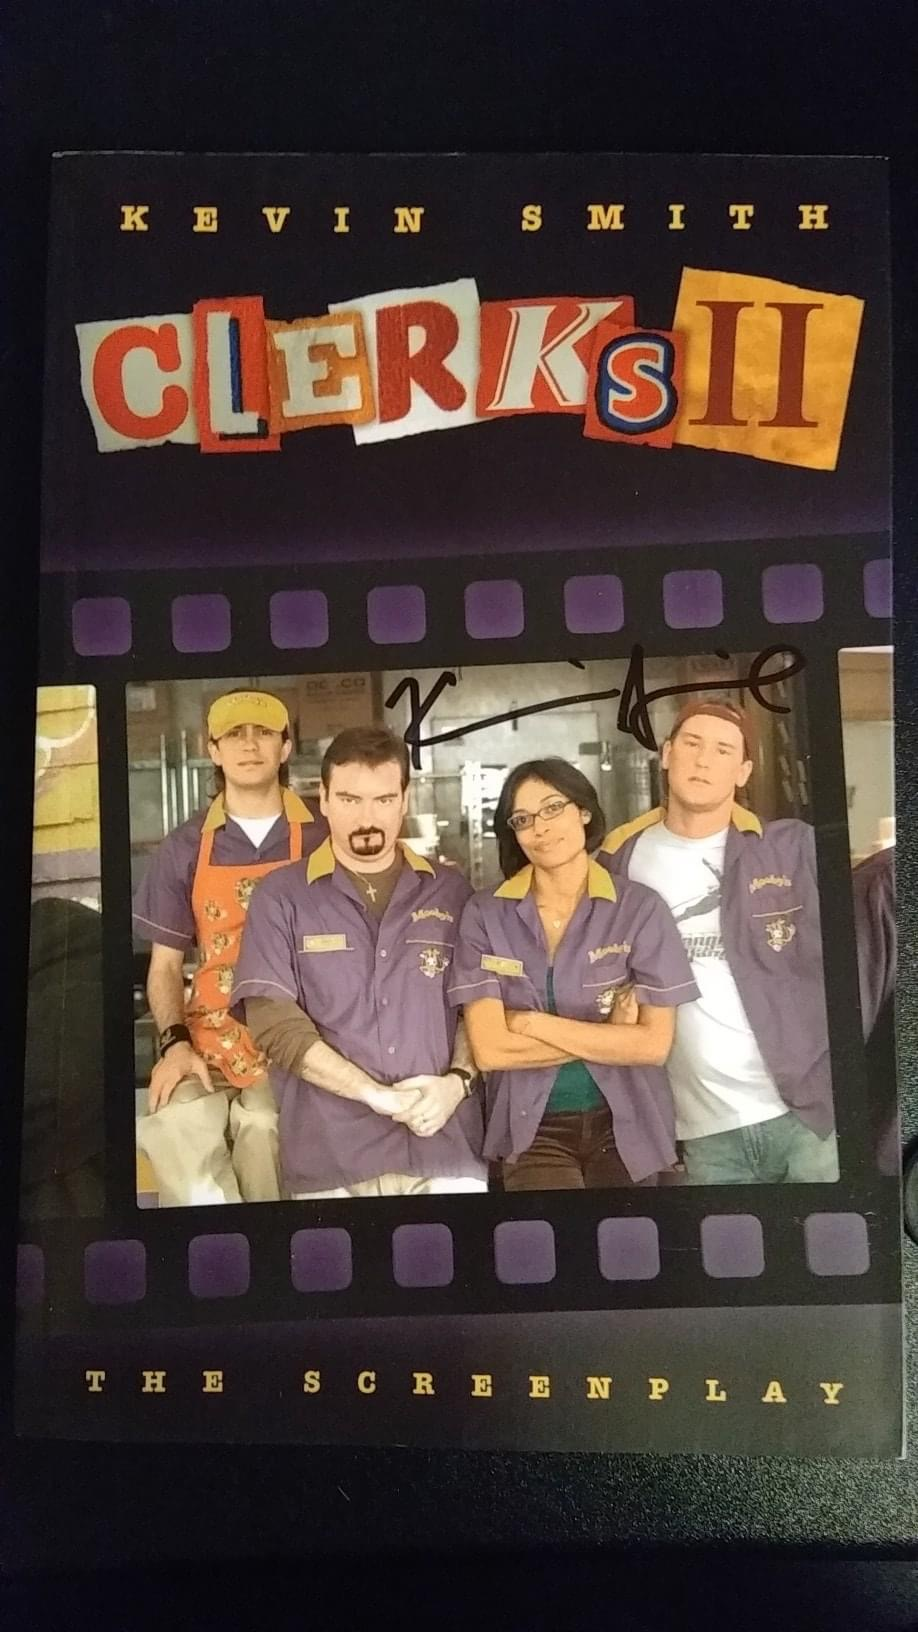 Clerks 2 Screenplay autographed by Kevin Smith